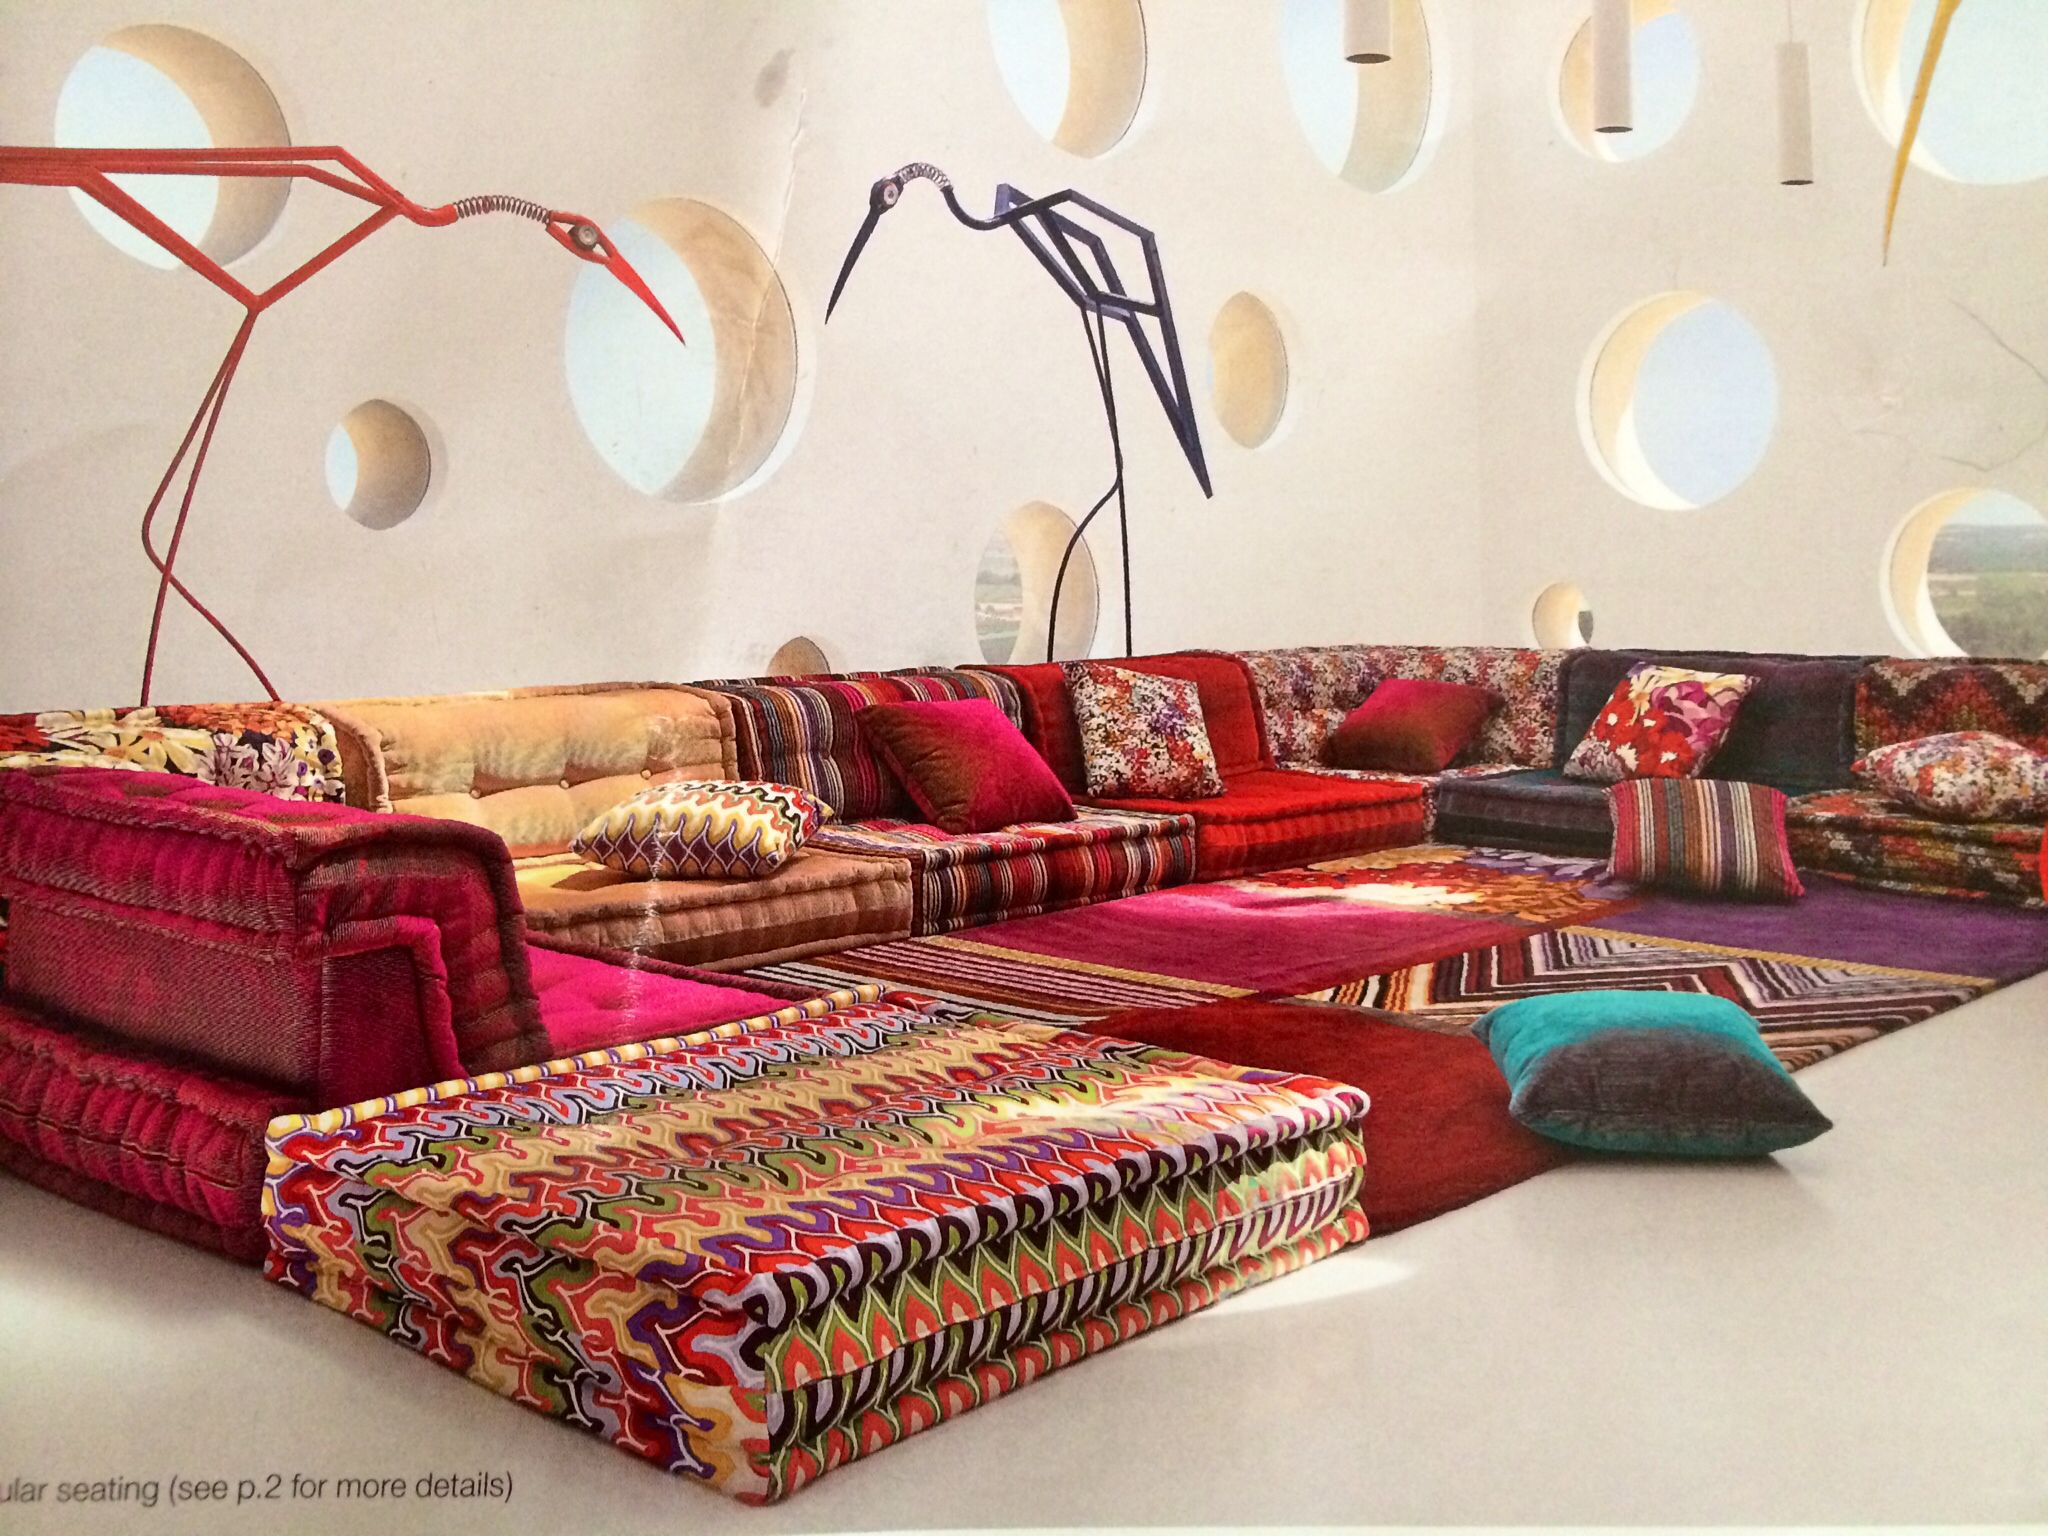 Modular Sofa Uxbridge Roche Bobois This Amazing Couch Is Versatile Rich In Color